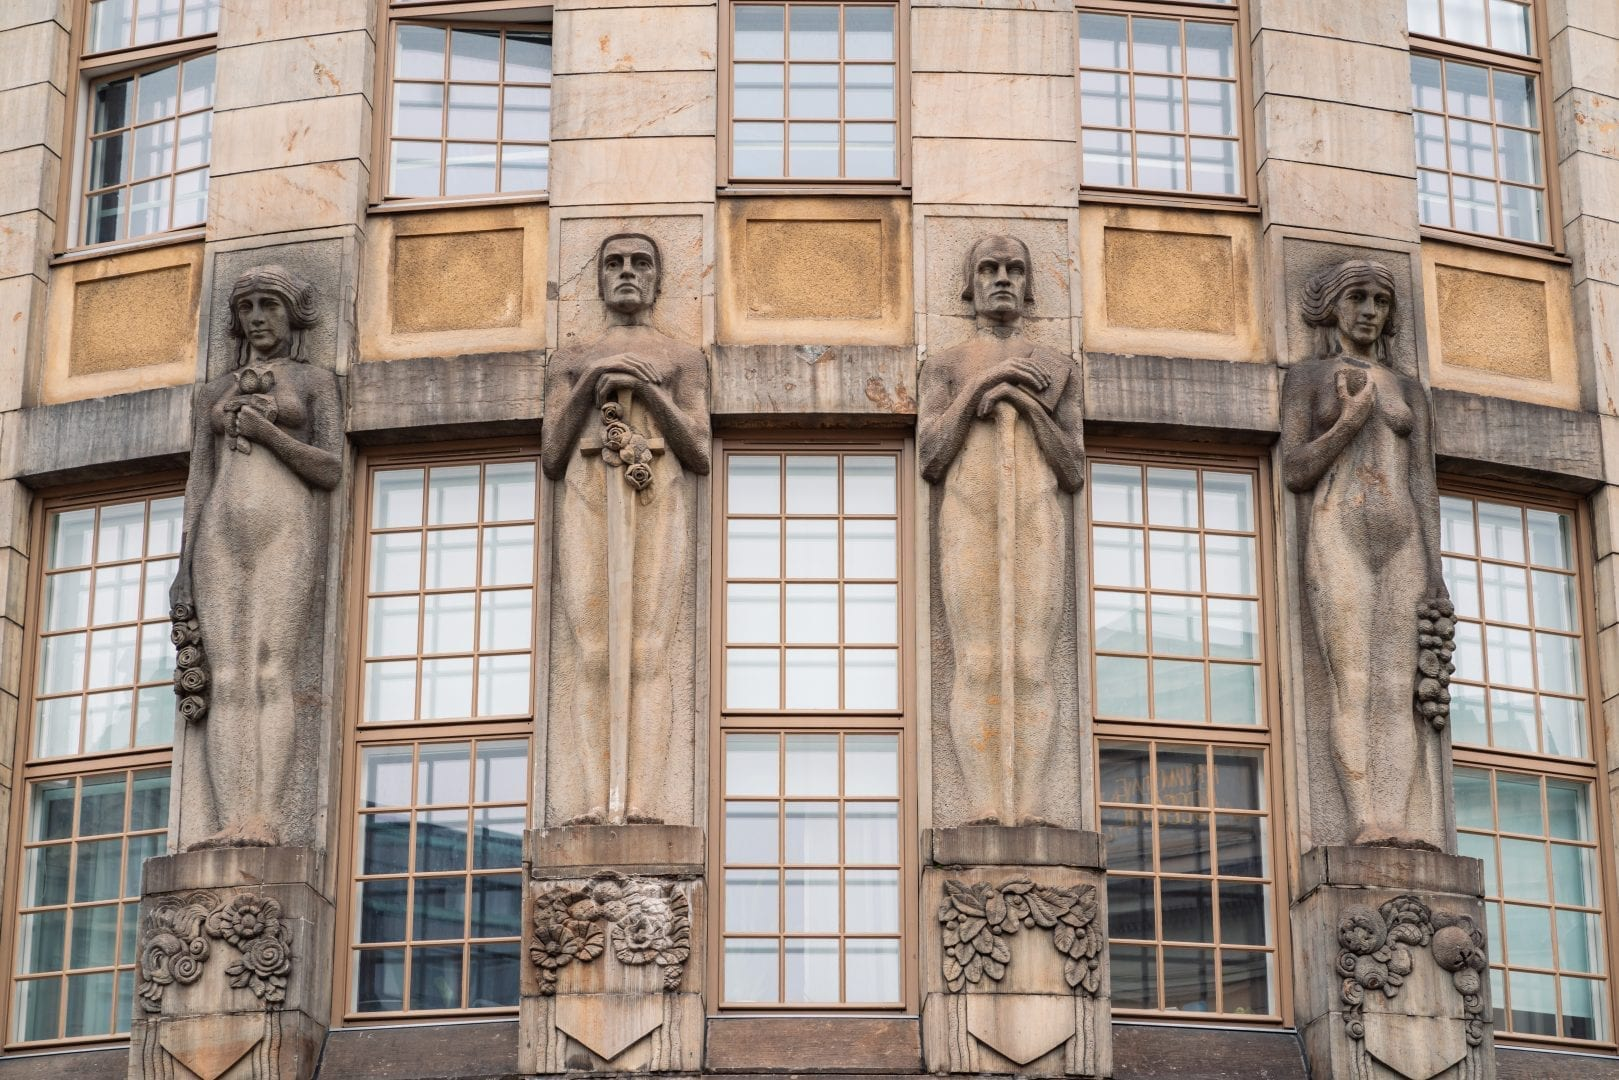 A close-up photo of an old building with very tall windows. There's four statues, one between every set of windows. From the left: a woman with short hair, naked, holding roses in one hand and a handful of flowers over her chest with the other, standing on a pedestal with rose and floral elements. A man with a sword held with two hands against his body, adorned with roses, with a stern face, naked, with morning glory-like florals on his pedestal. A man with a staff held with both hands against his body, naked, with leaves and small berries on his pedestal. A woman holding a large bunch of fruits in one hand, and a single apple over her chest, naked.